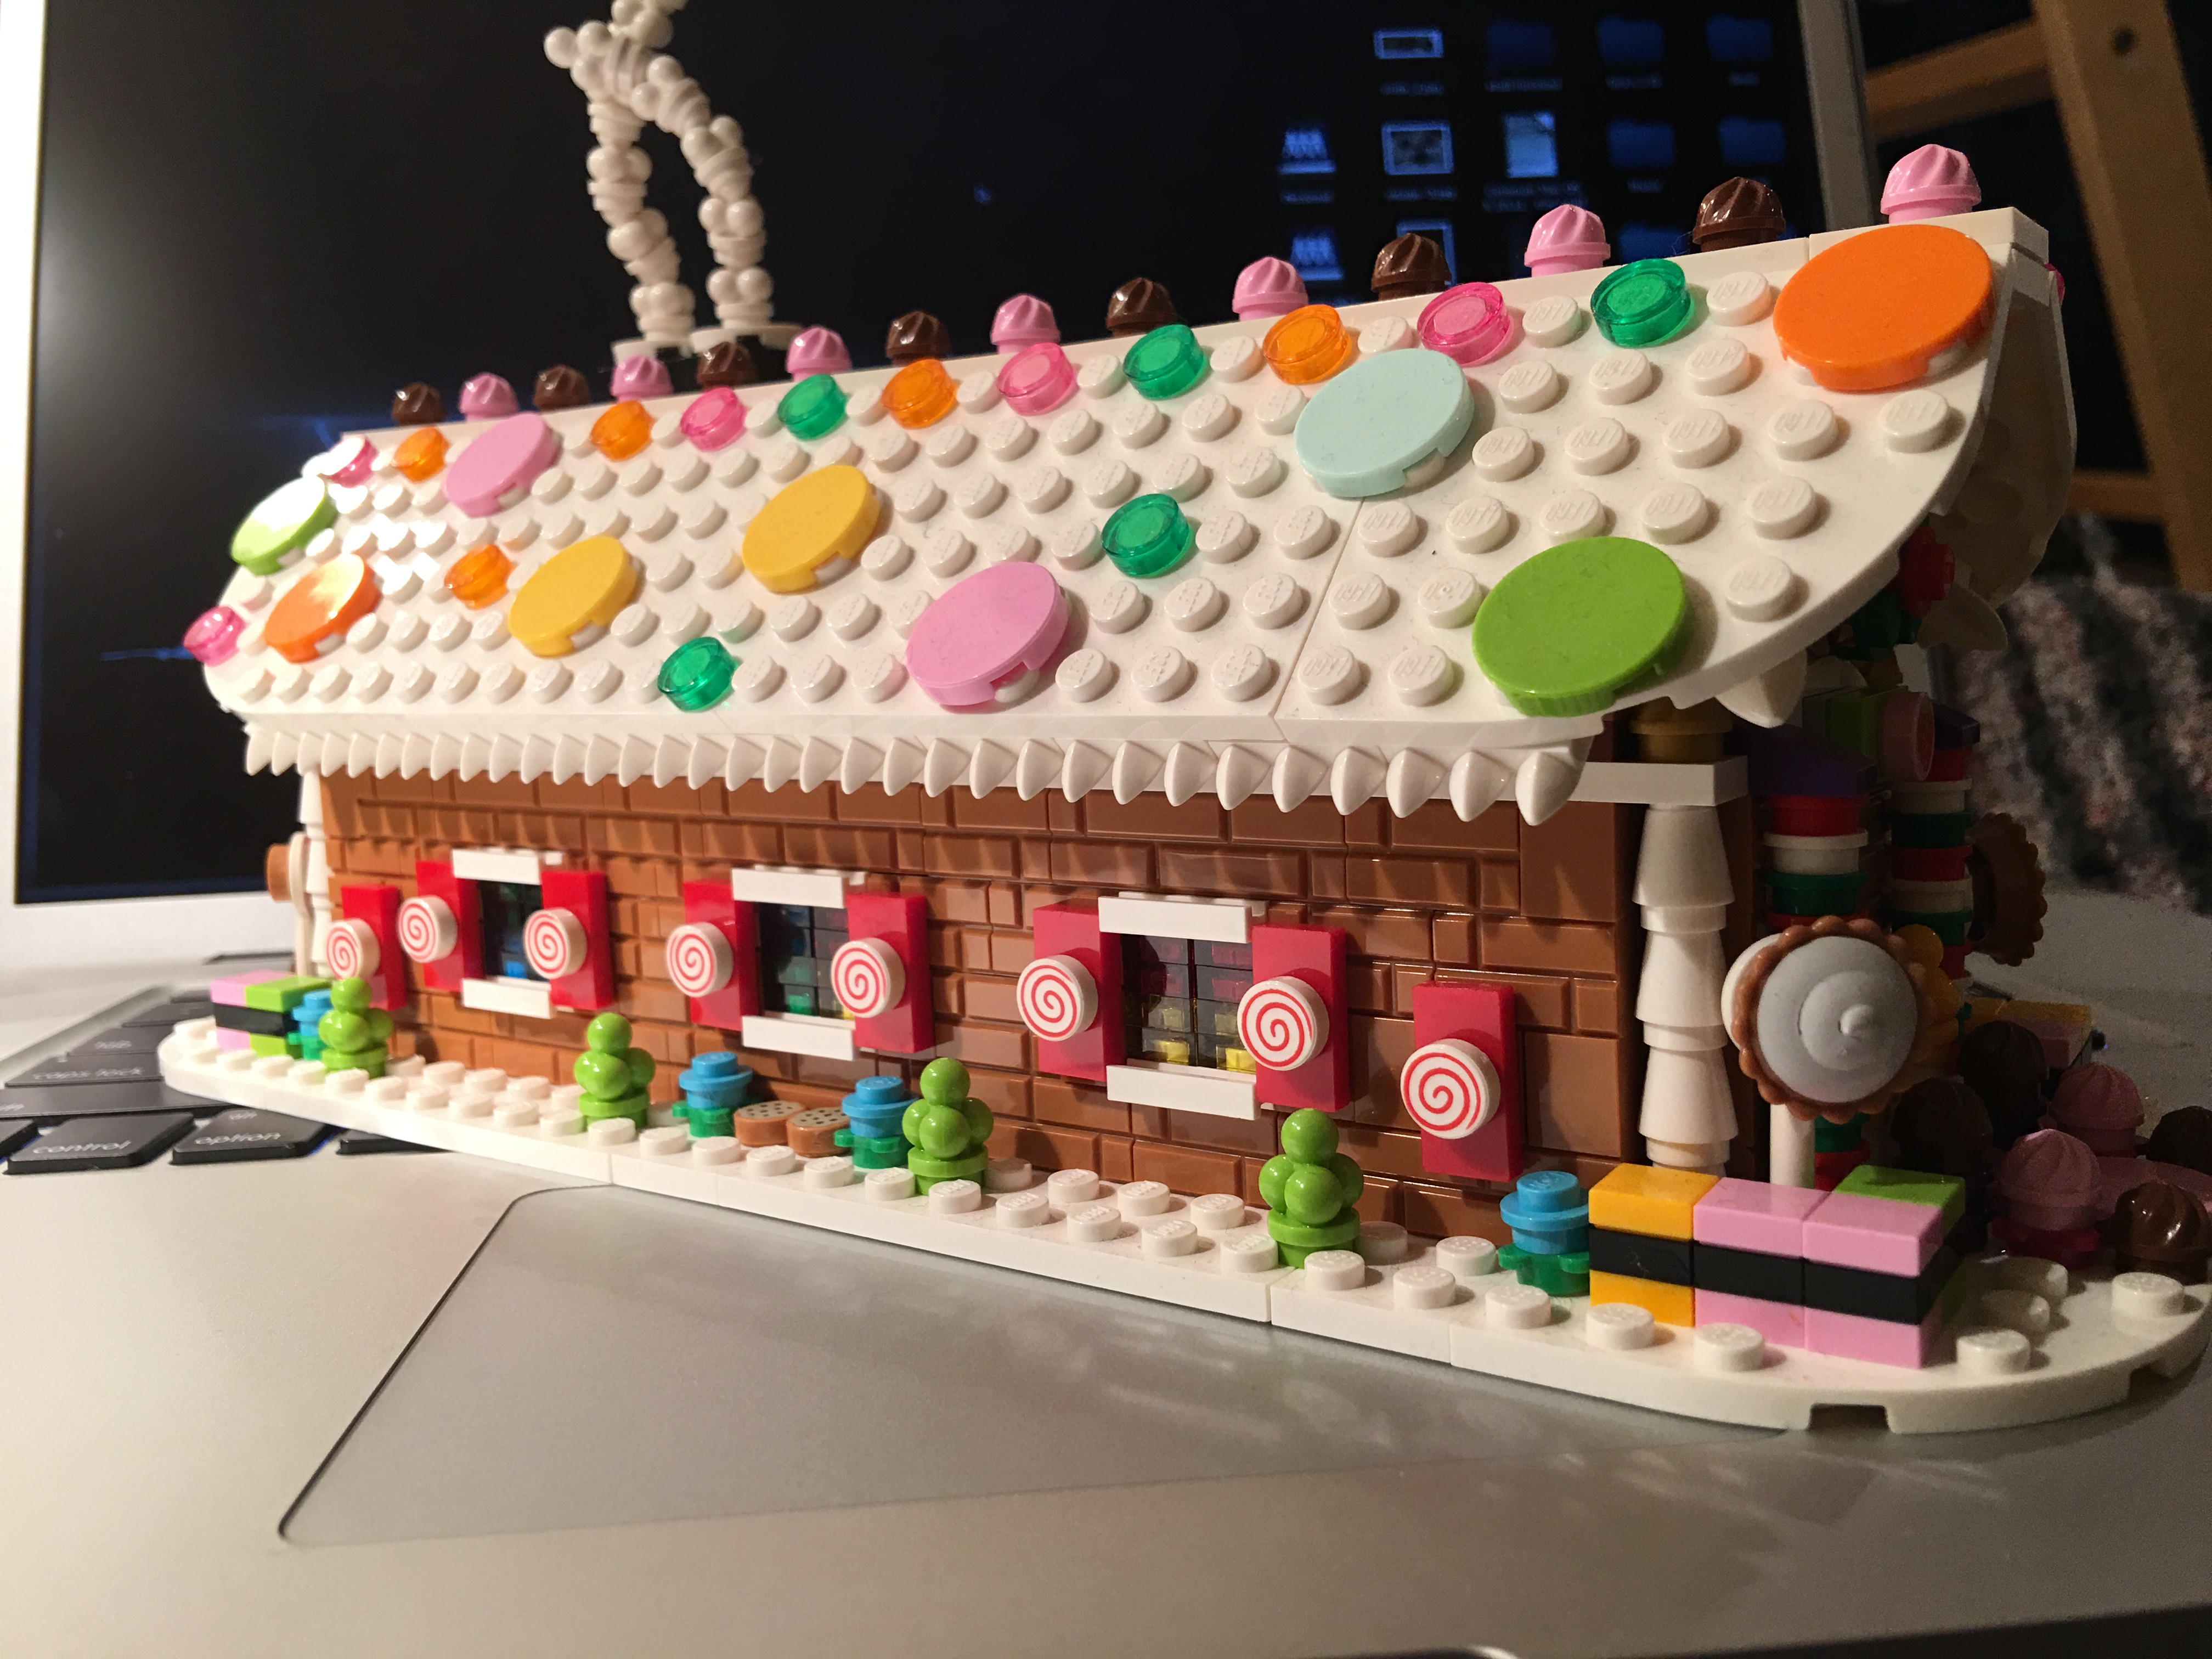 LEGO Moc Gingerbread House by The Allergy Chef